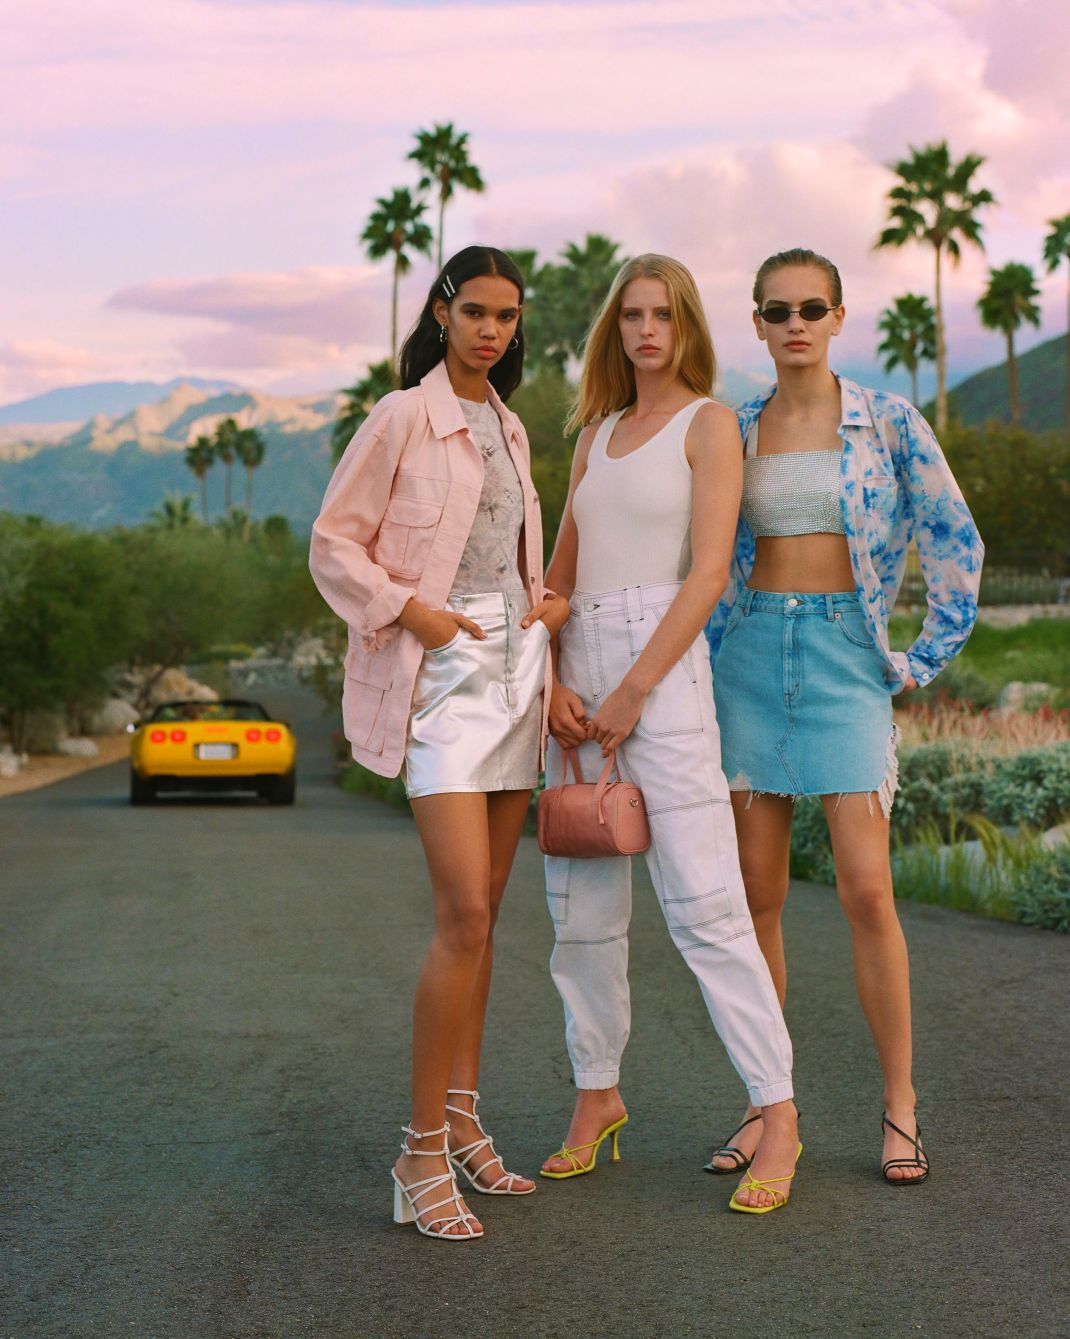 The Festival Edit by TOPSHOP / TOPMAN